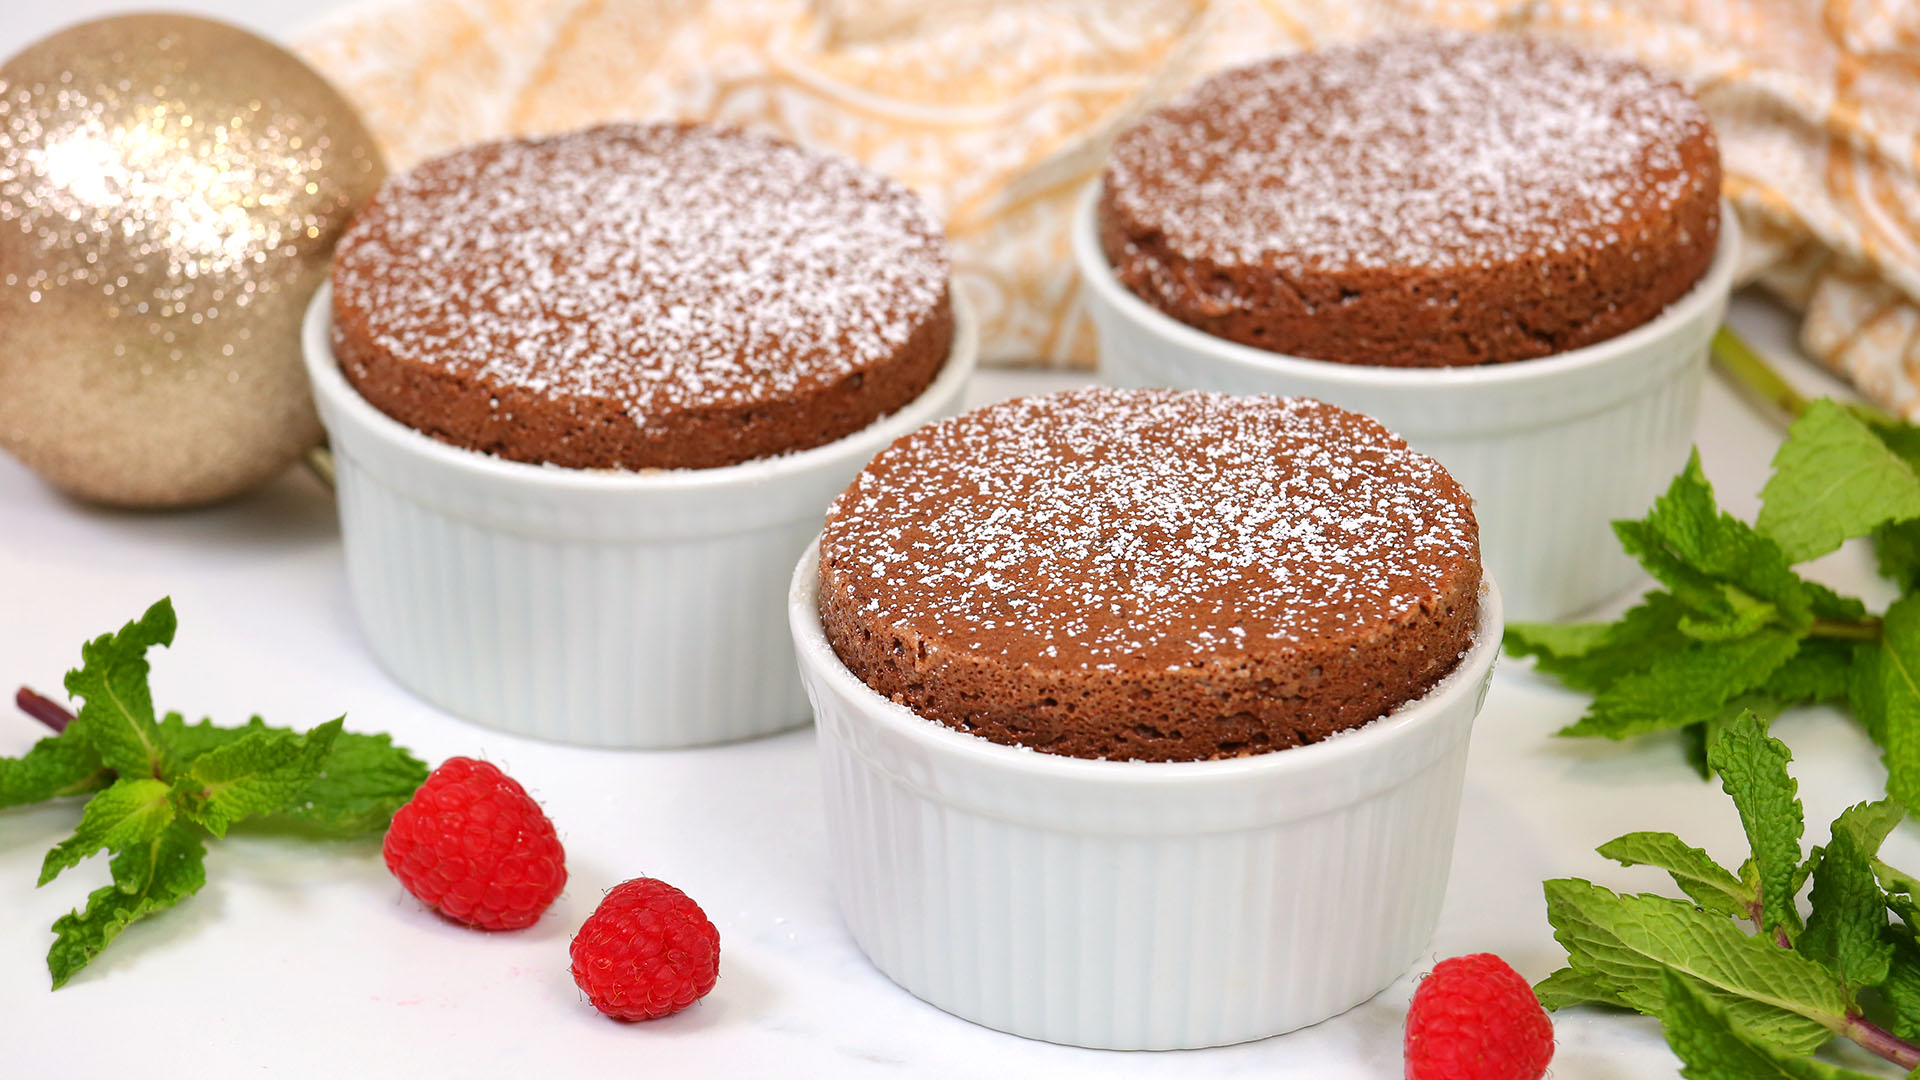 Chocolate-Souffle_16x9_The-Domestic-Geek